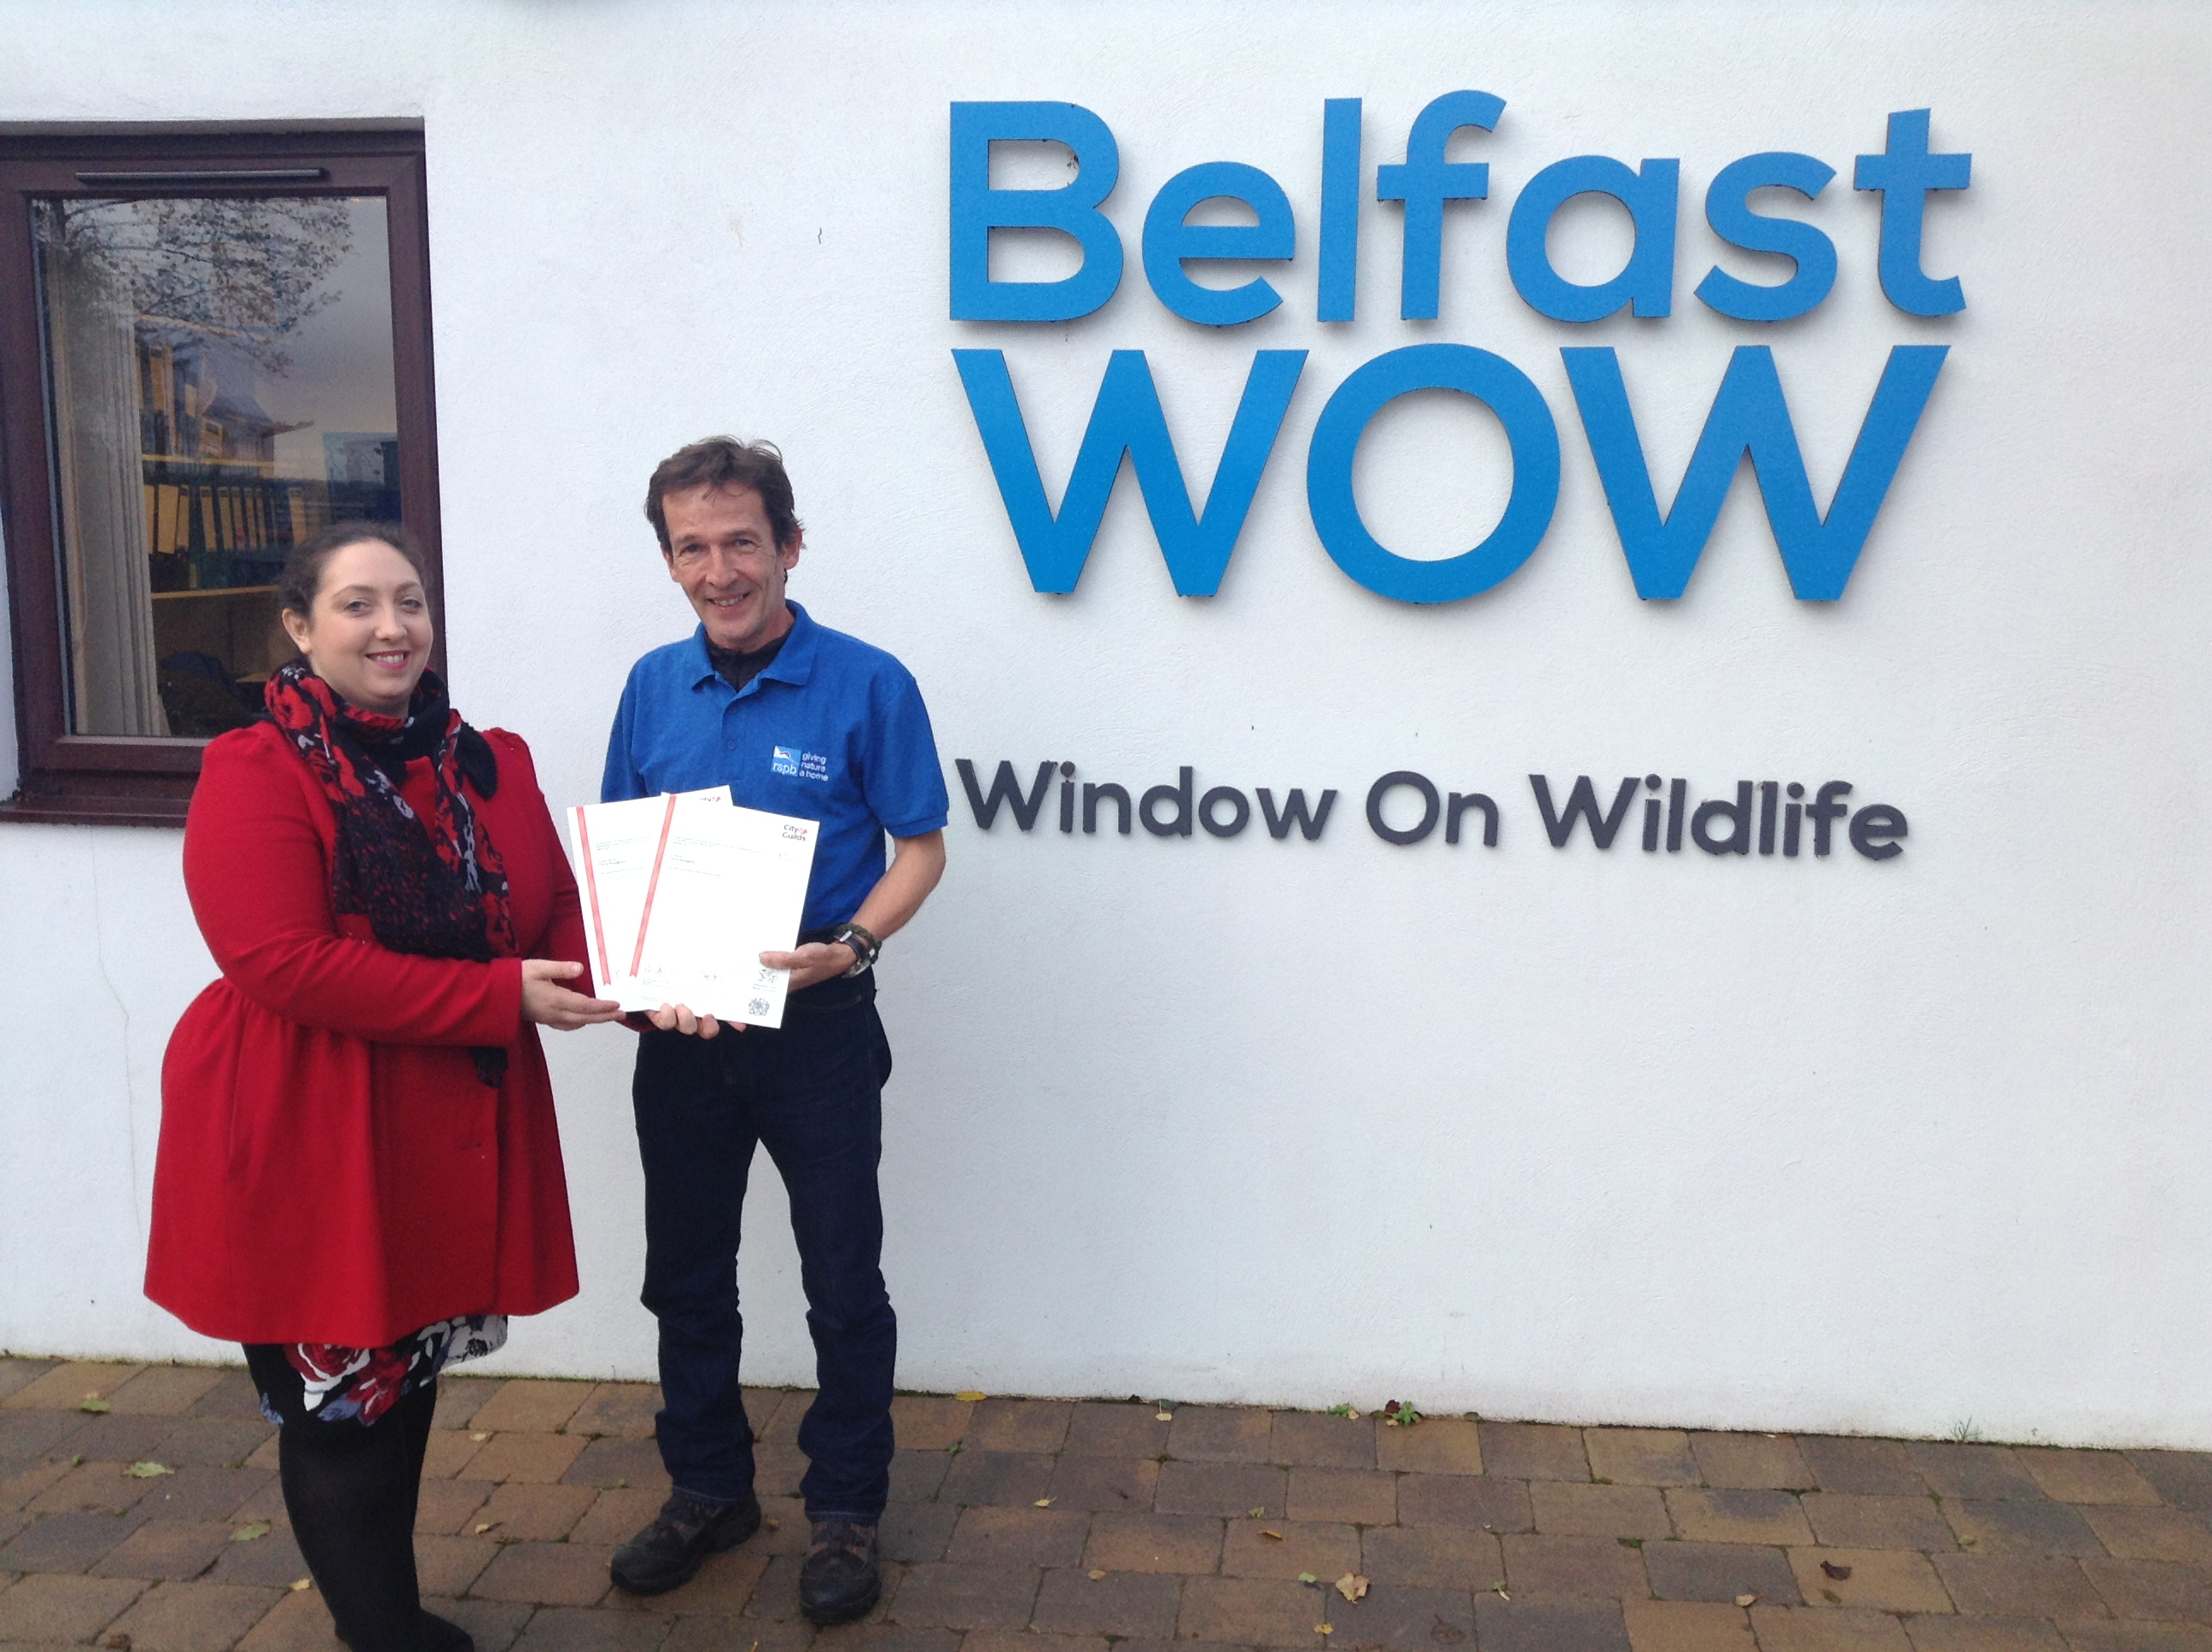 Worldhost Customer Service Training Rspb Ni Belfast Wow